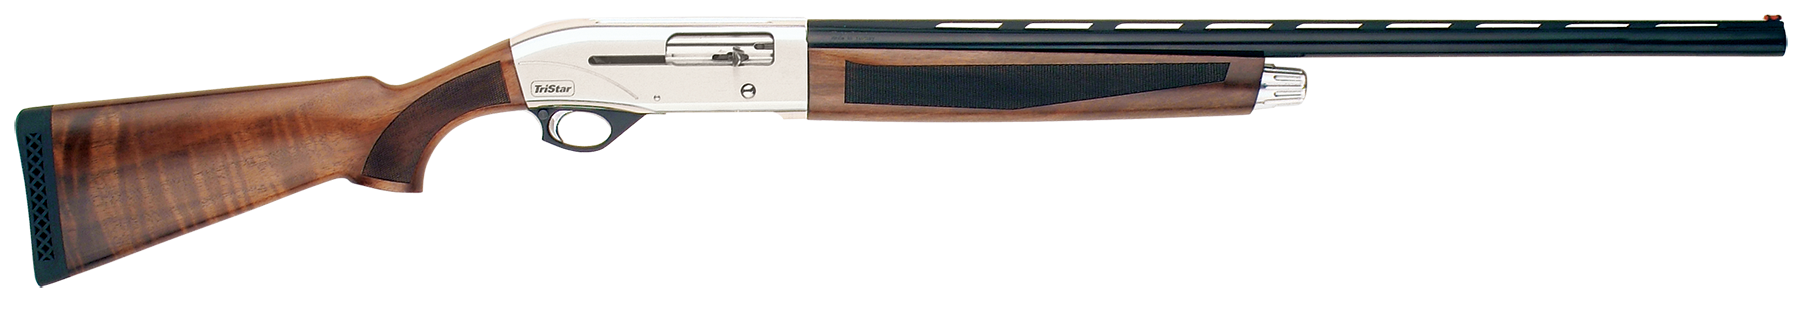 TriStar Viper G2 Silver Semi-Auto Shotgun 2.75'' 28 Gauge 28'' Silver Steel - Turkish Walnut